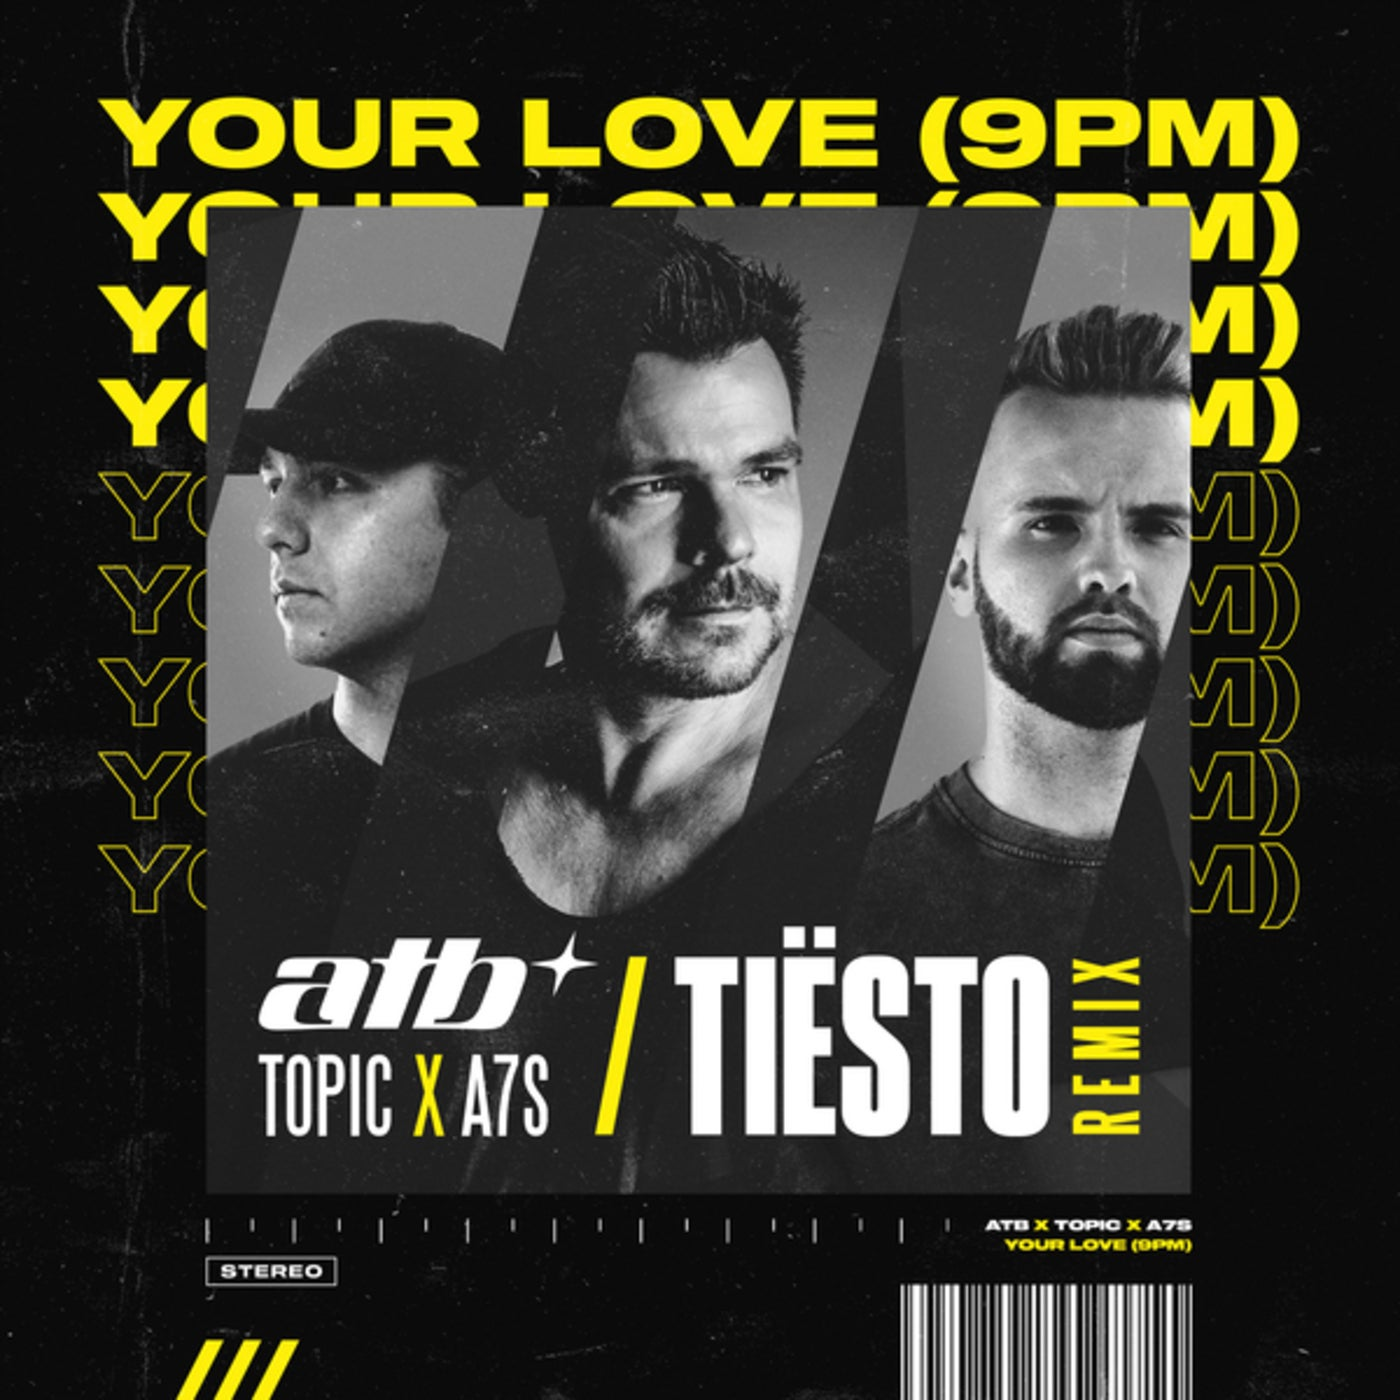 Your Love (9PM) (Tiësto Extended Remix)